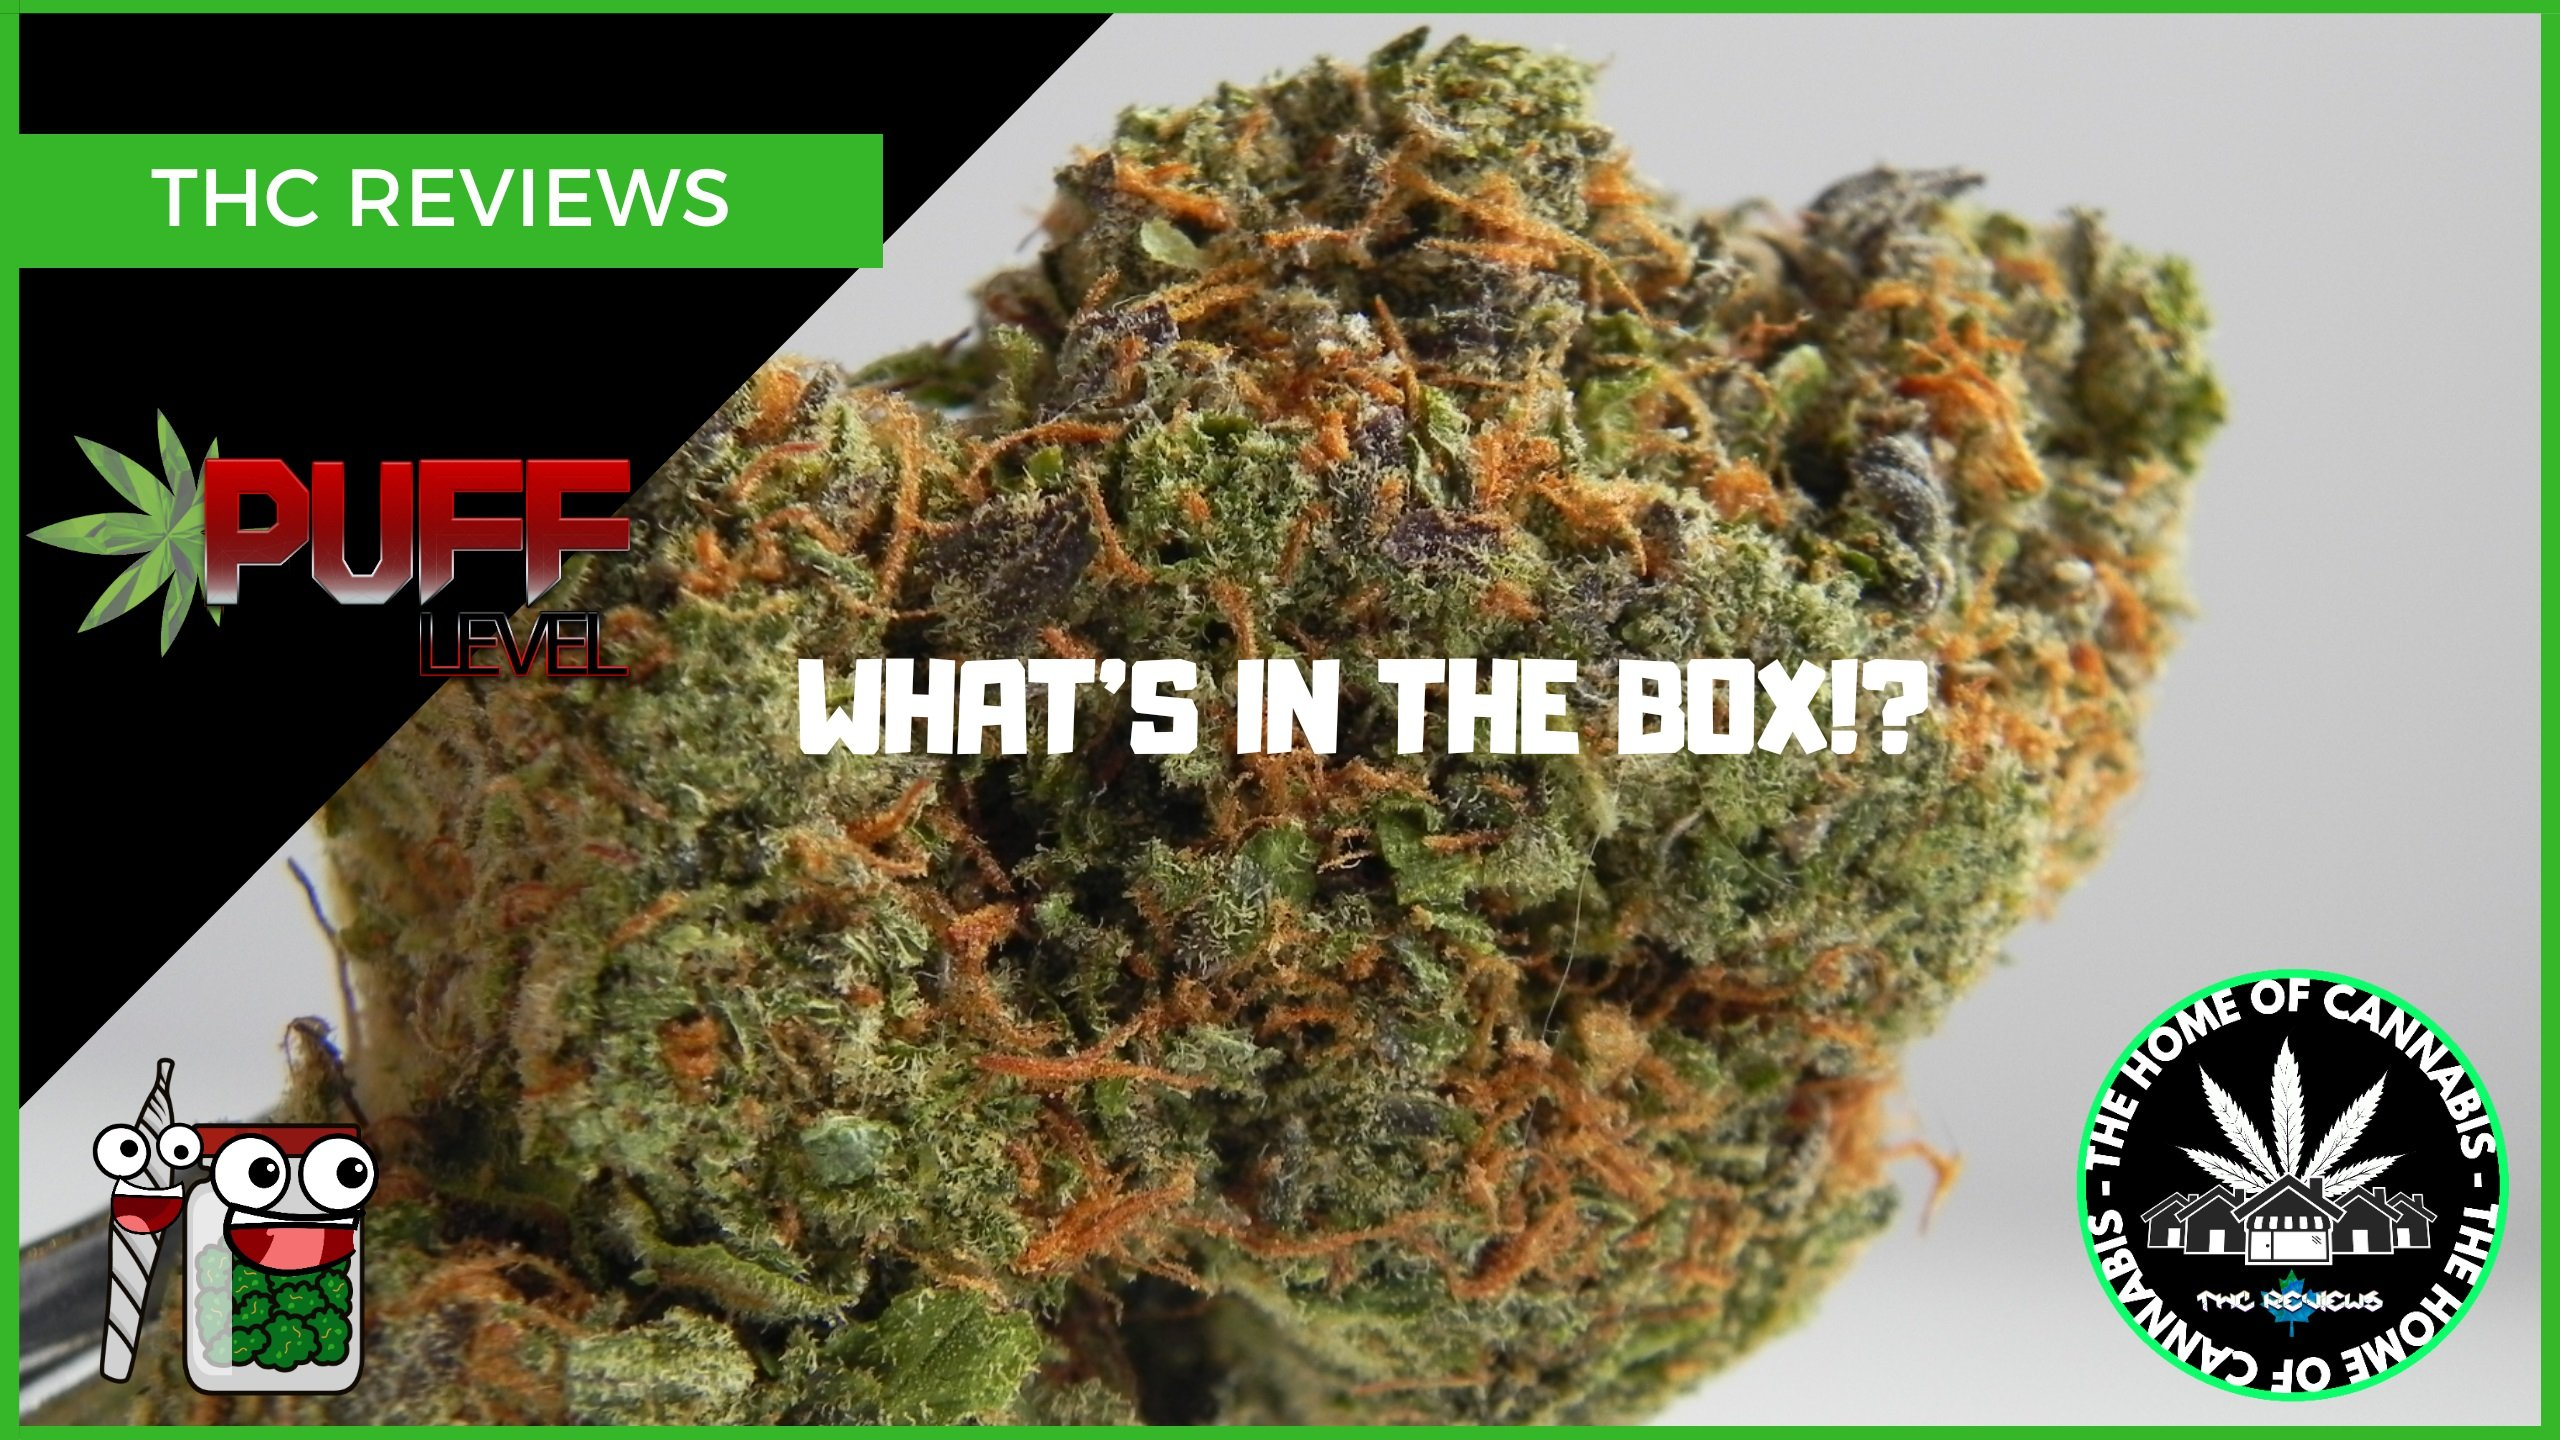 WHAT'S IN THE BOX? (QUAD FLOWER UNBOX - PUFF LEVEL)